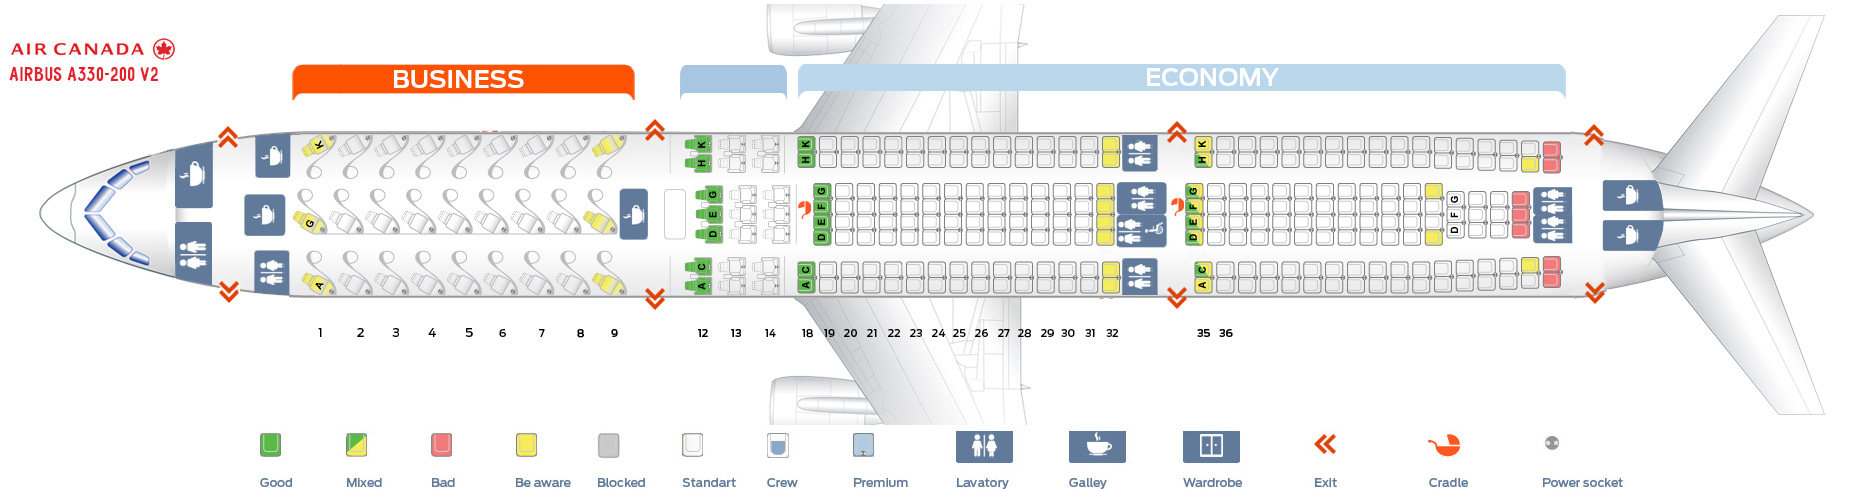 Seat Map and Seating Chart Airbus A330 300 Air Canada Version 2